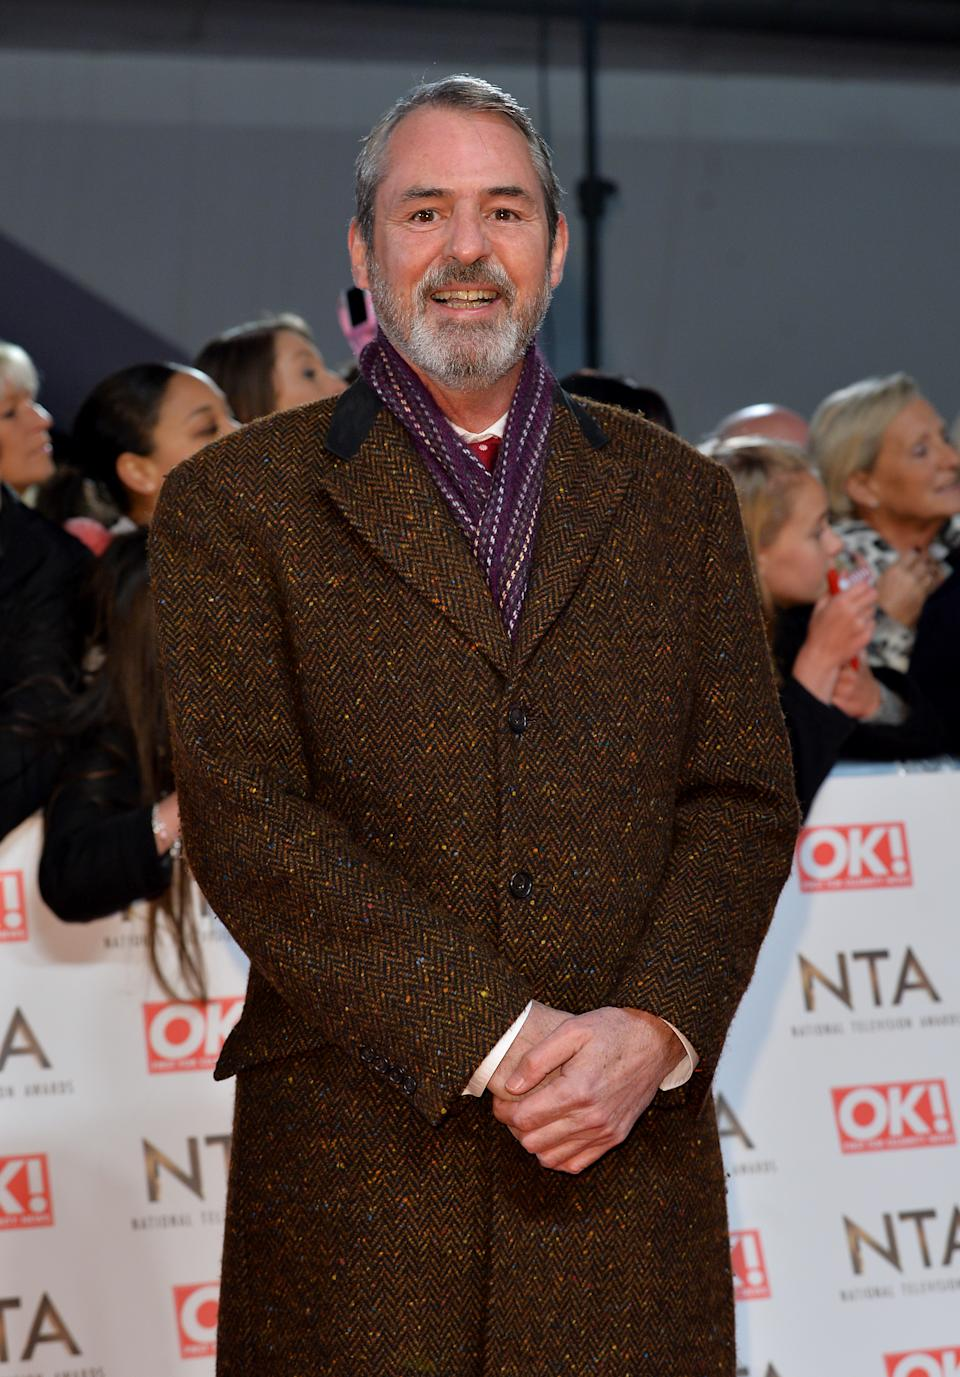 Neil Morrissey attending the National Television Awards 2017 at the O2, London. (Photo by Matt Crossick/PA Images via Getty Images)